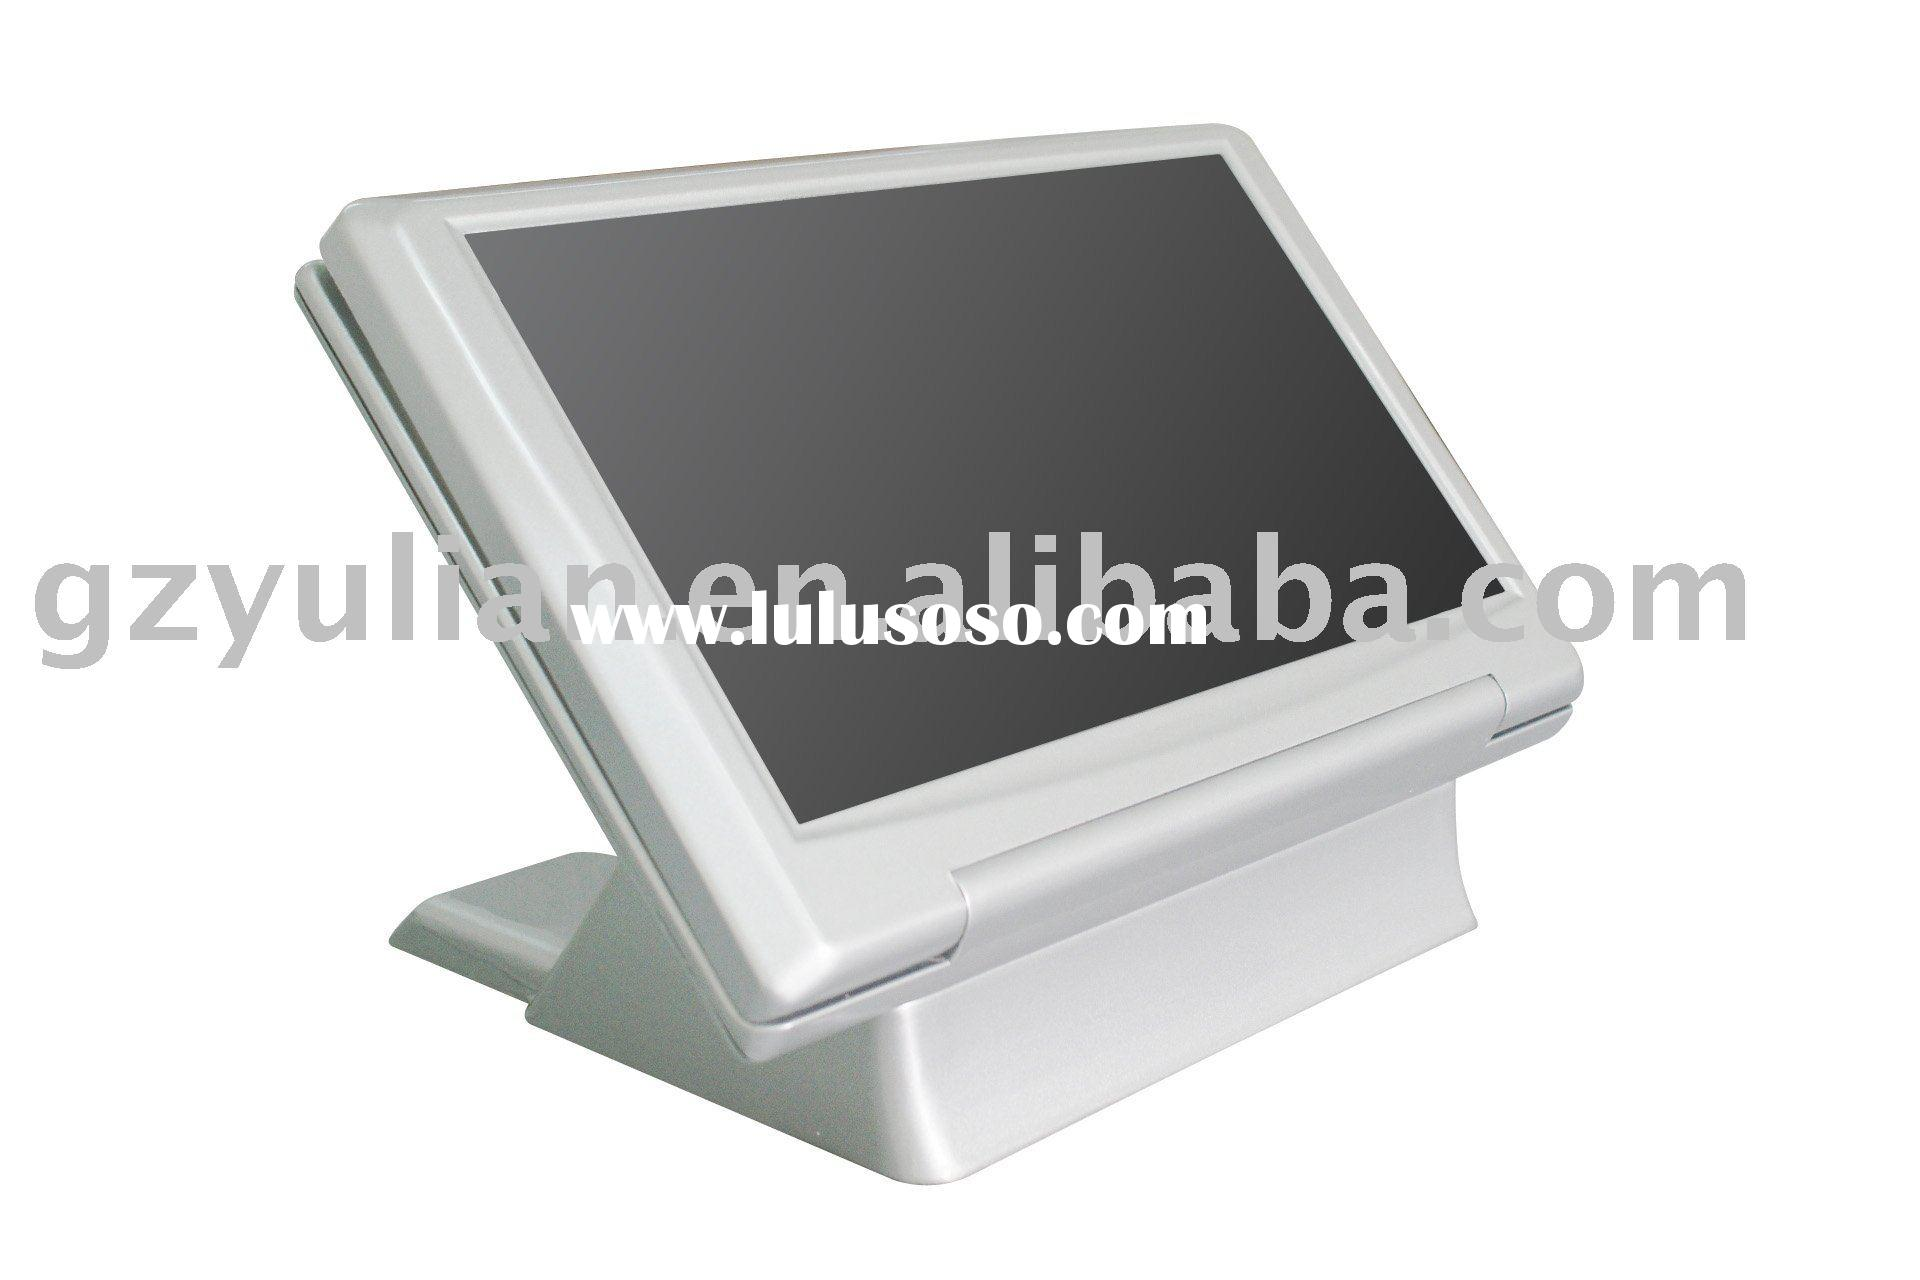 Dual screen Touch screen computer--15.6 inch/ wide screen 15.6 inch touch screen POS/ Dual screen PO